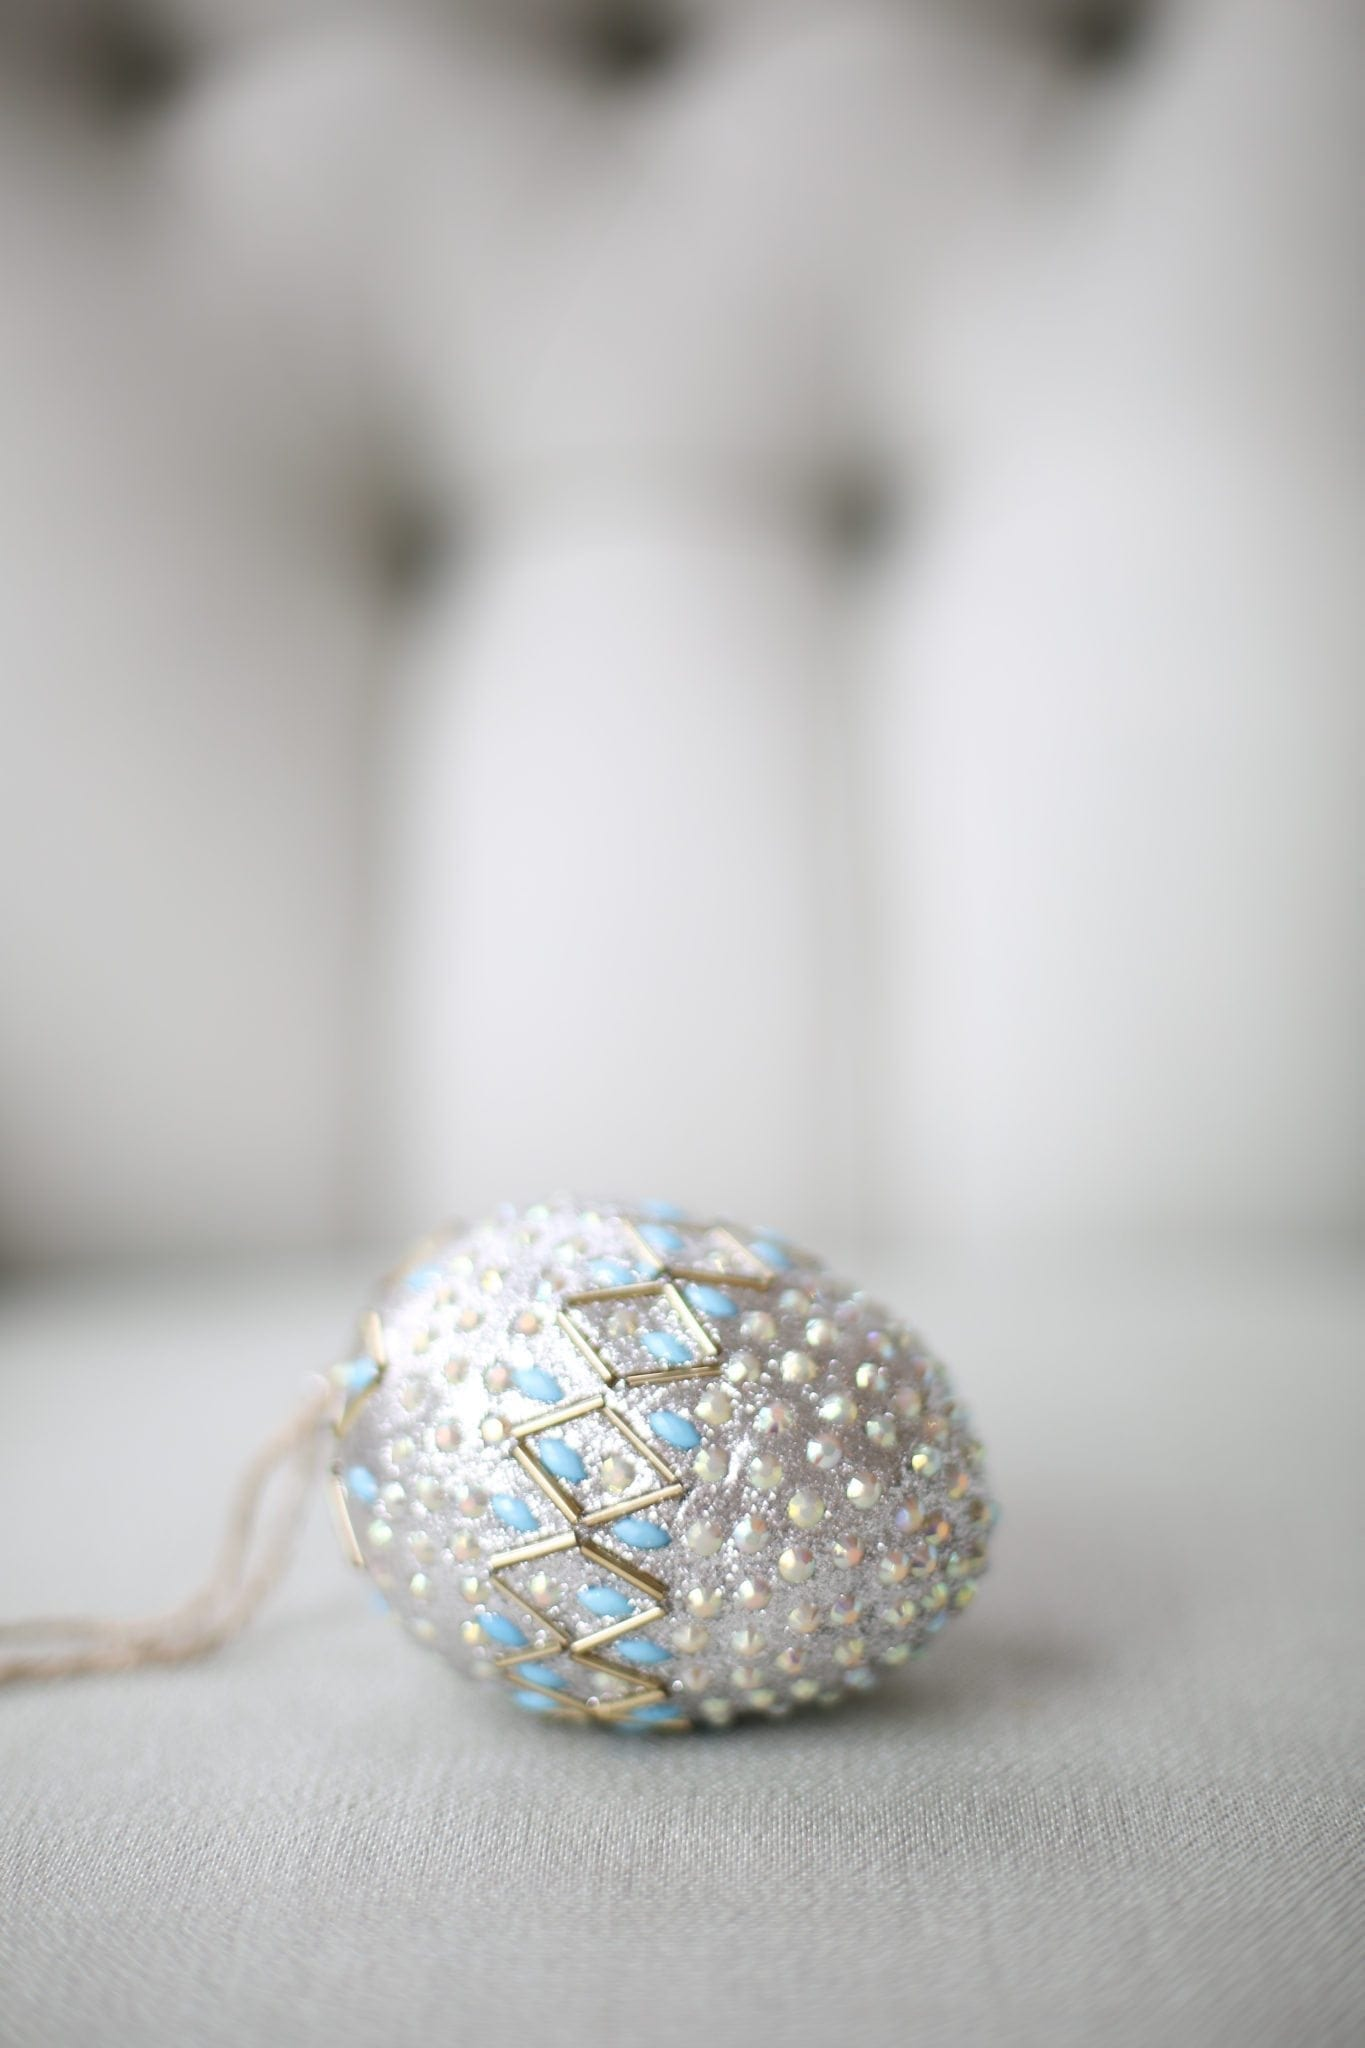 Blue and Silver Easter egg from Pottery Barn holiday decor line.